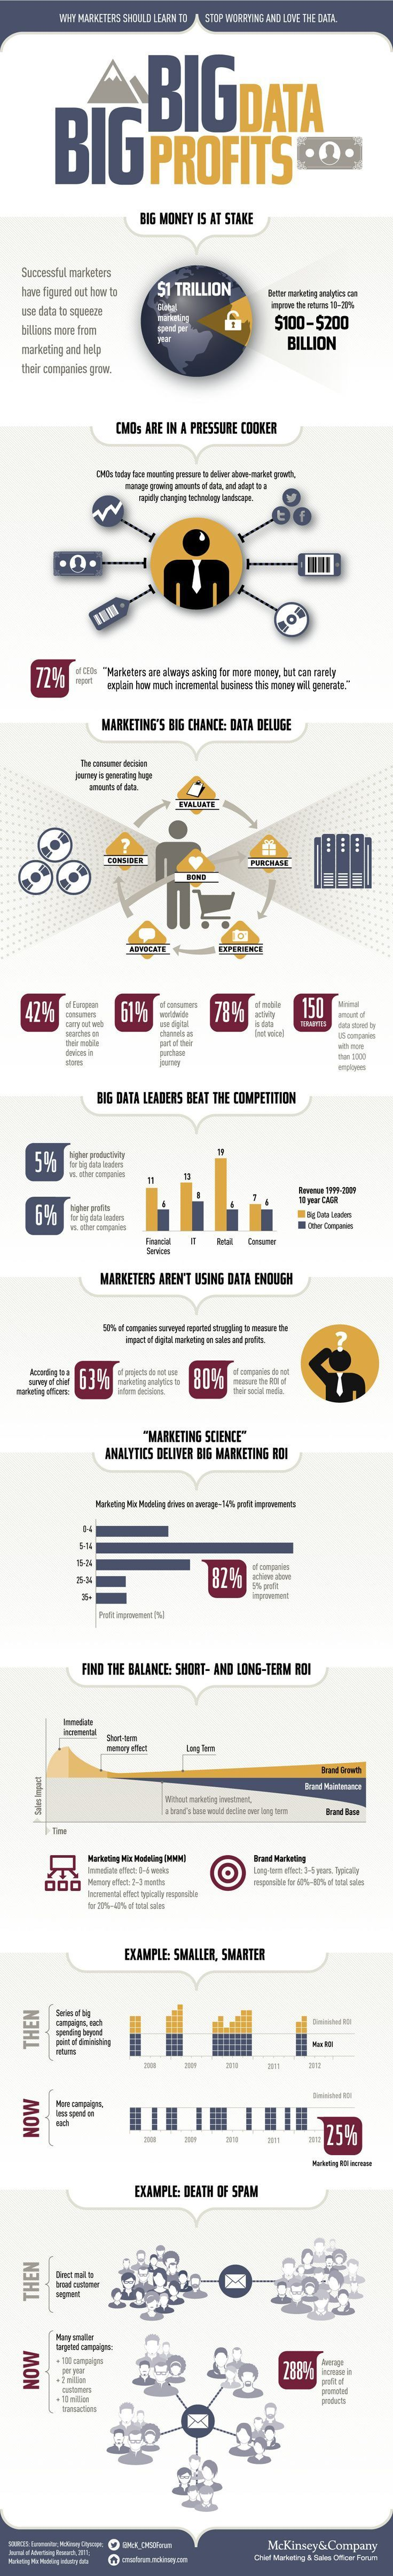 Why Spending on Big Data Isn't a Waste (Infographic)